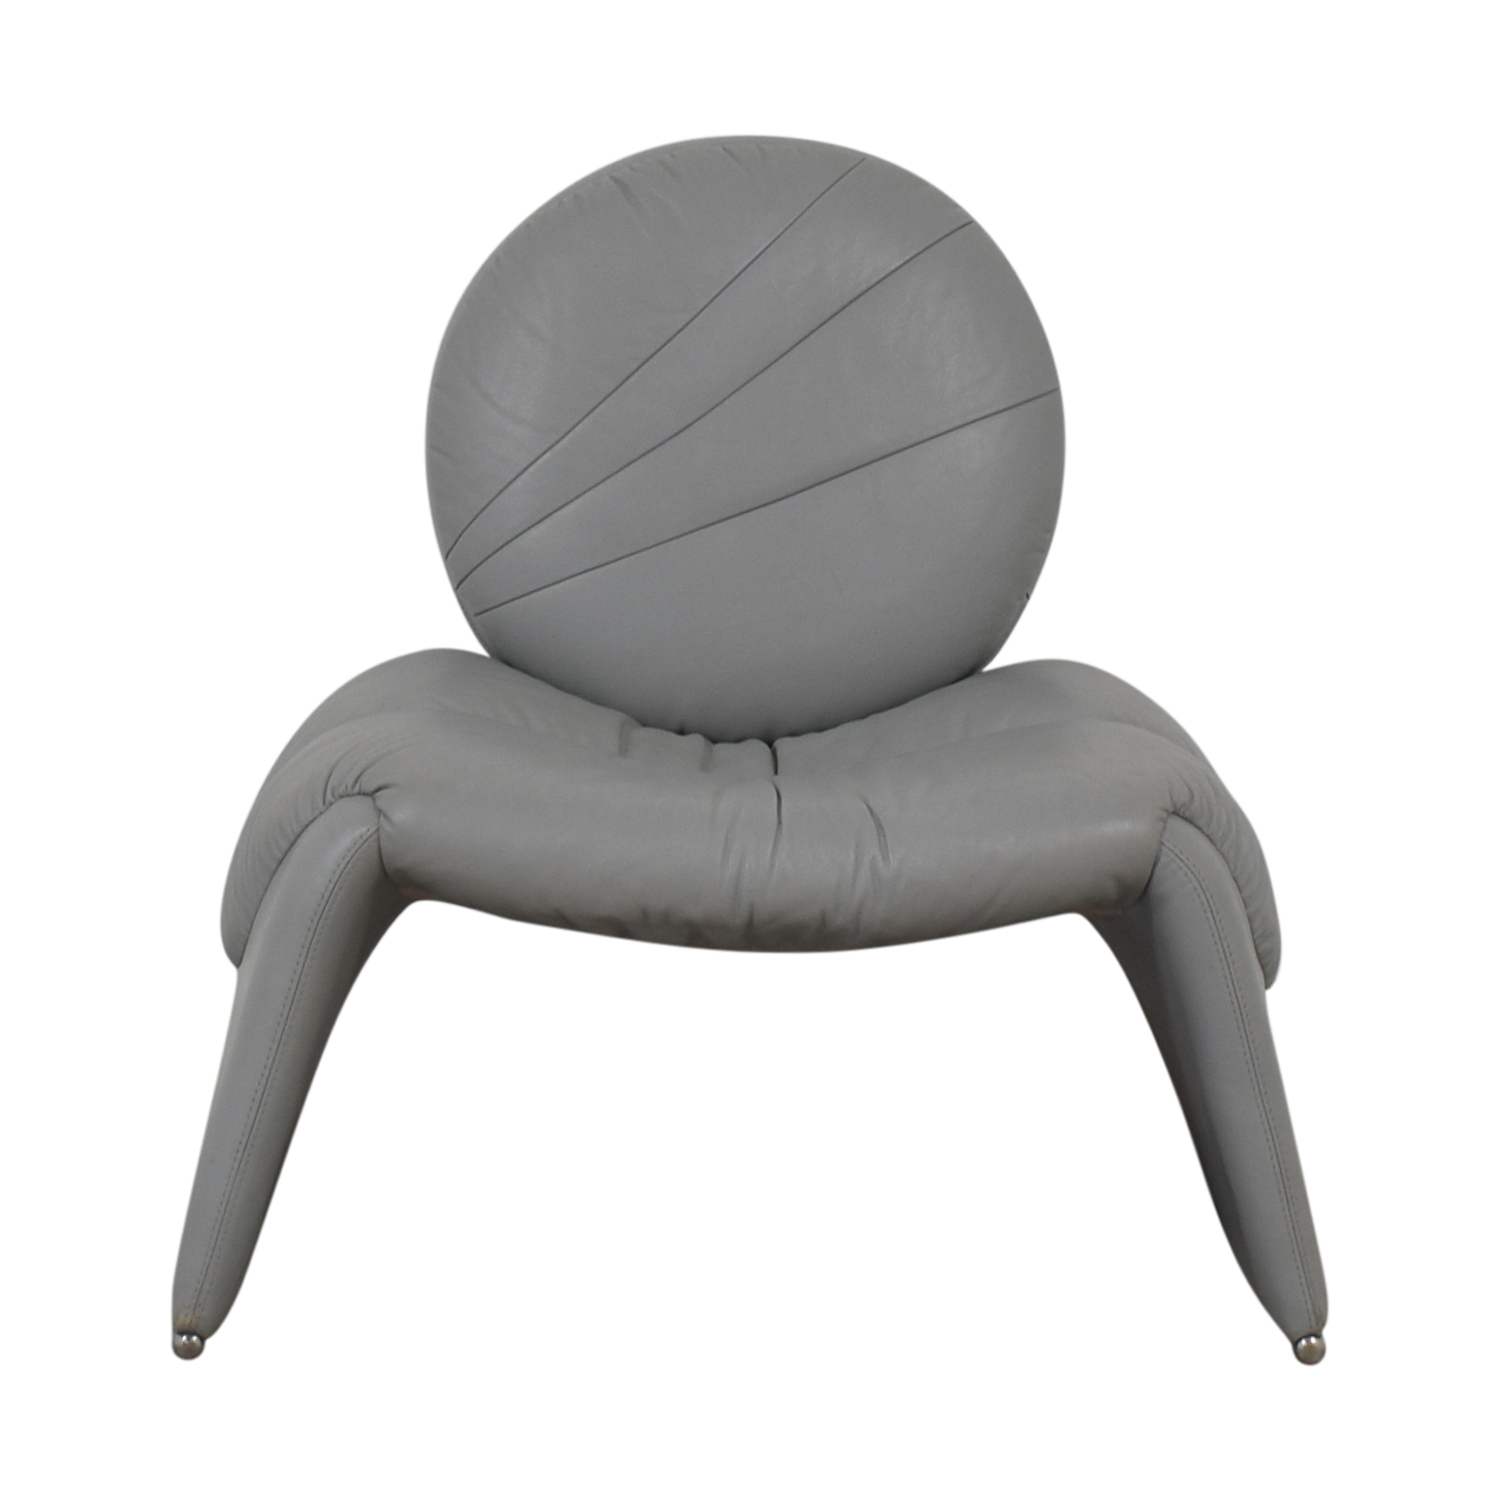 House of Grossman Gray Accent Chair / Accent Chairs